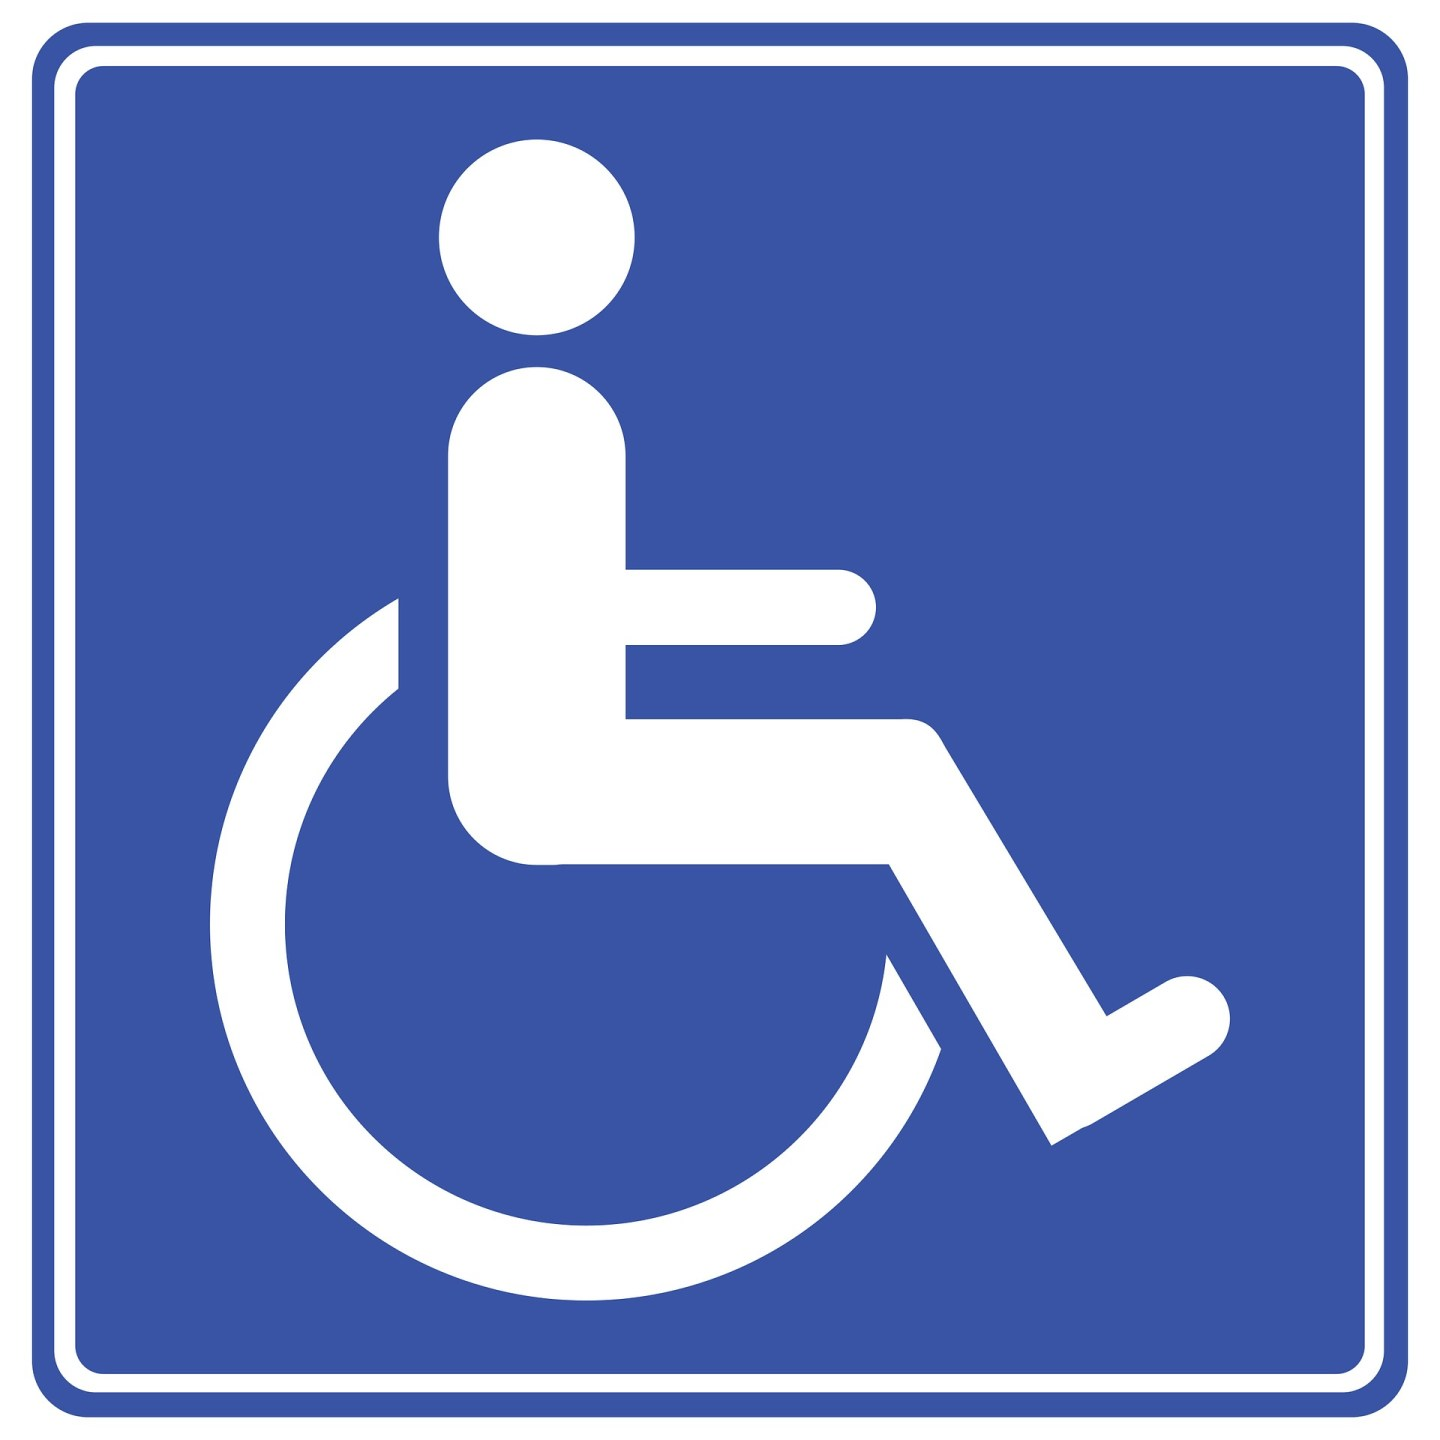 A blue square with the person in a wheelchair disability icon in white.